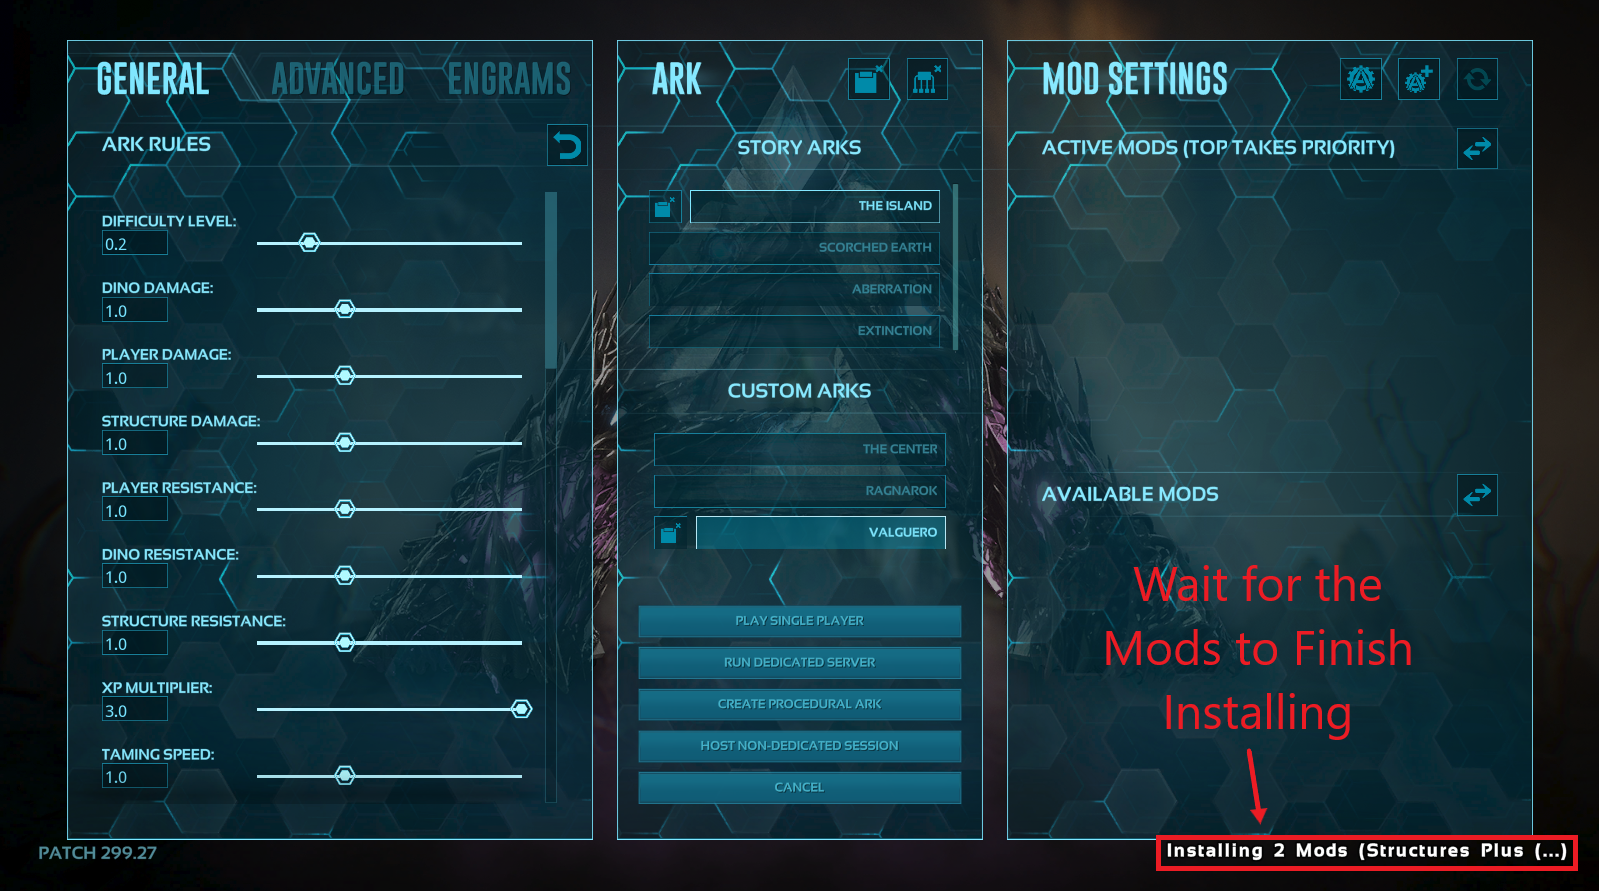 ARK Survival Evolved host local screen showing mods being installed.